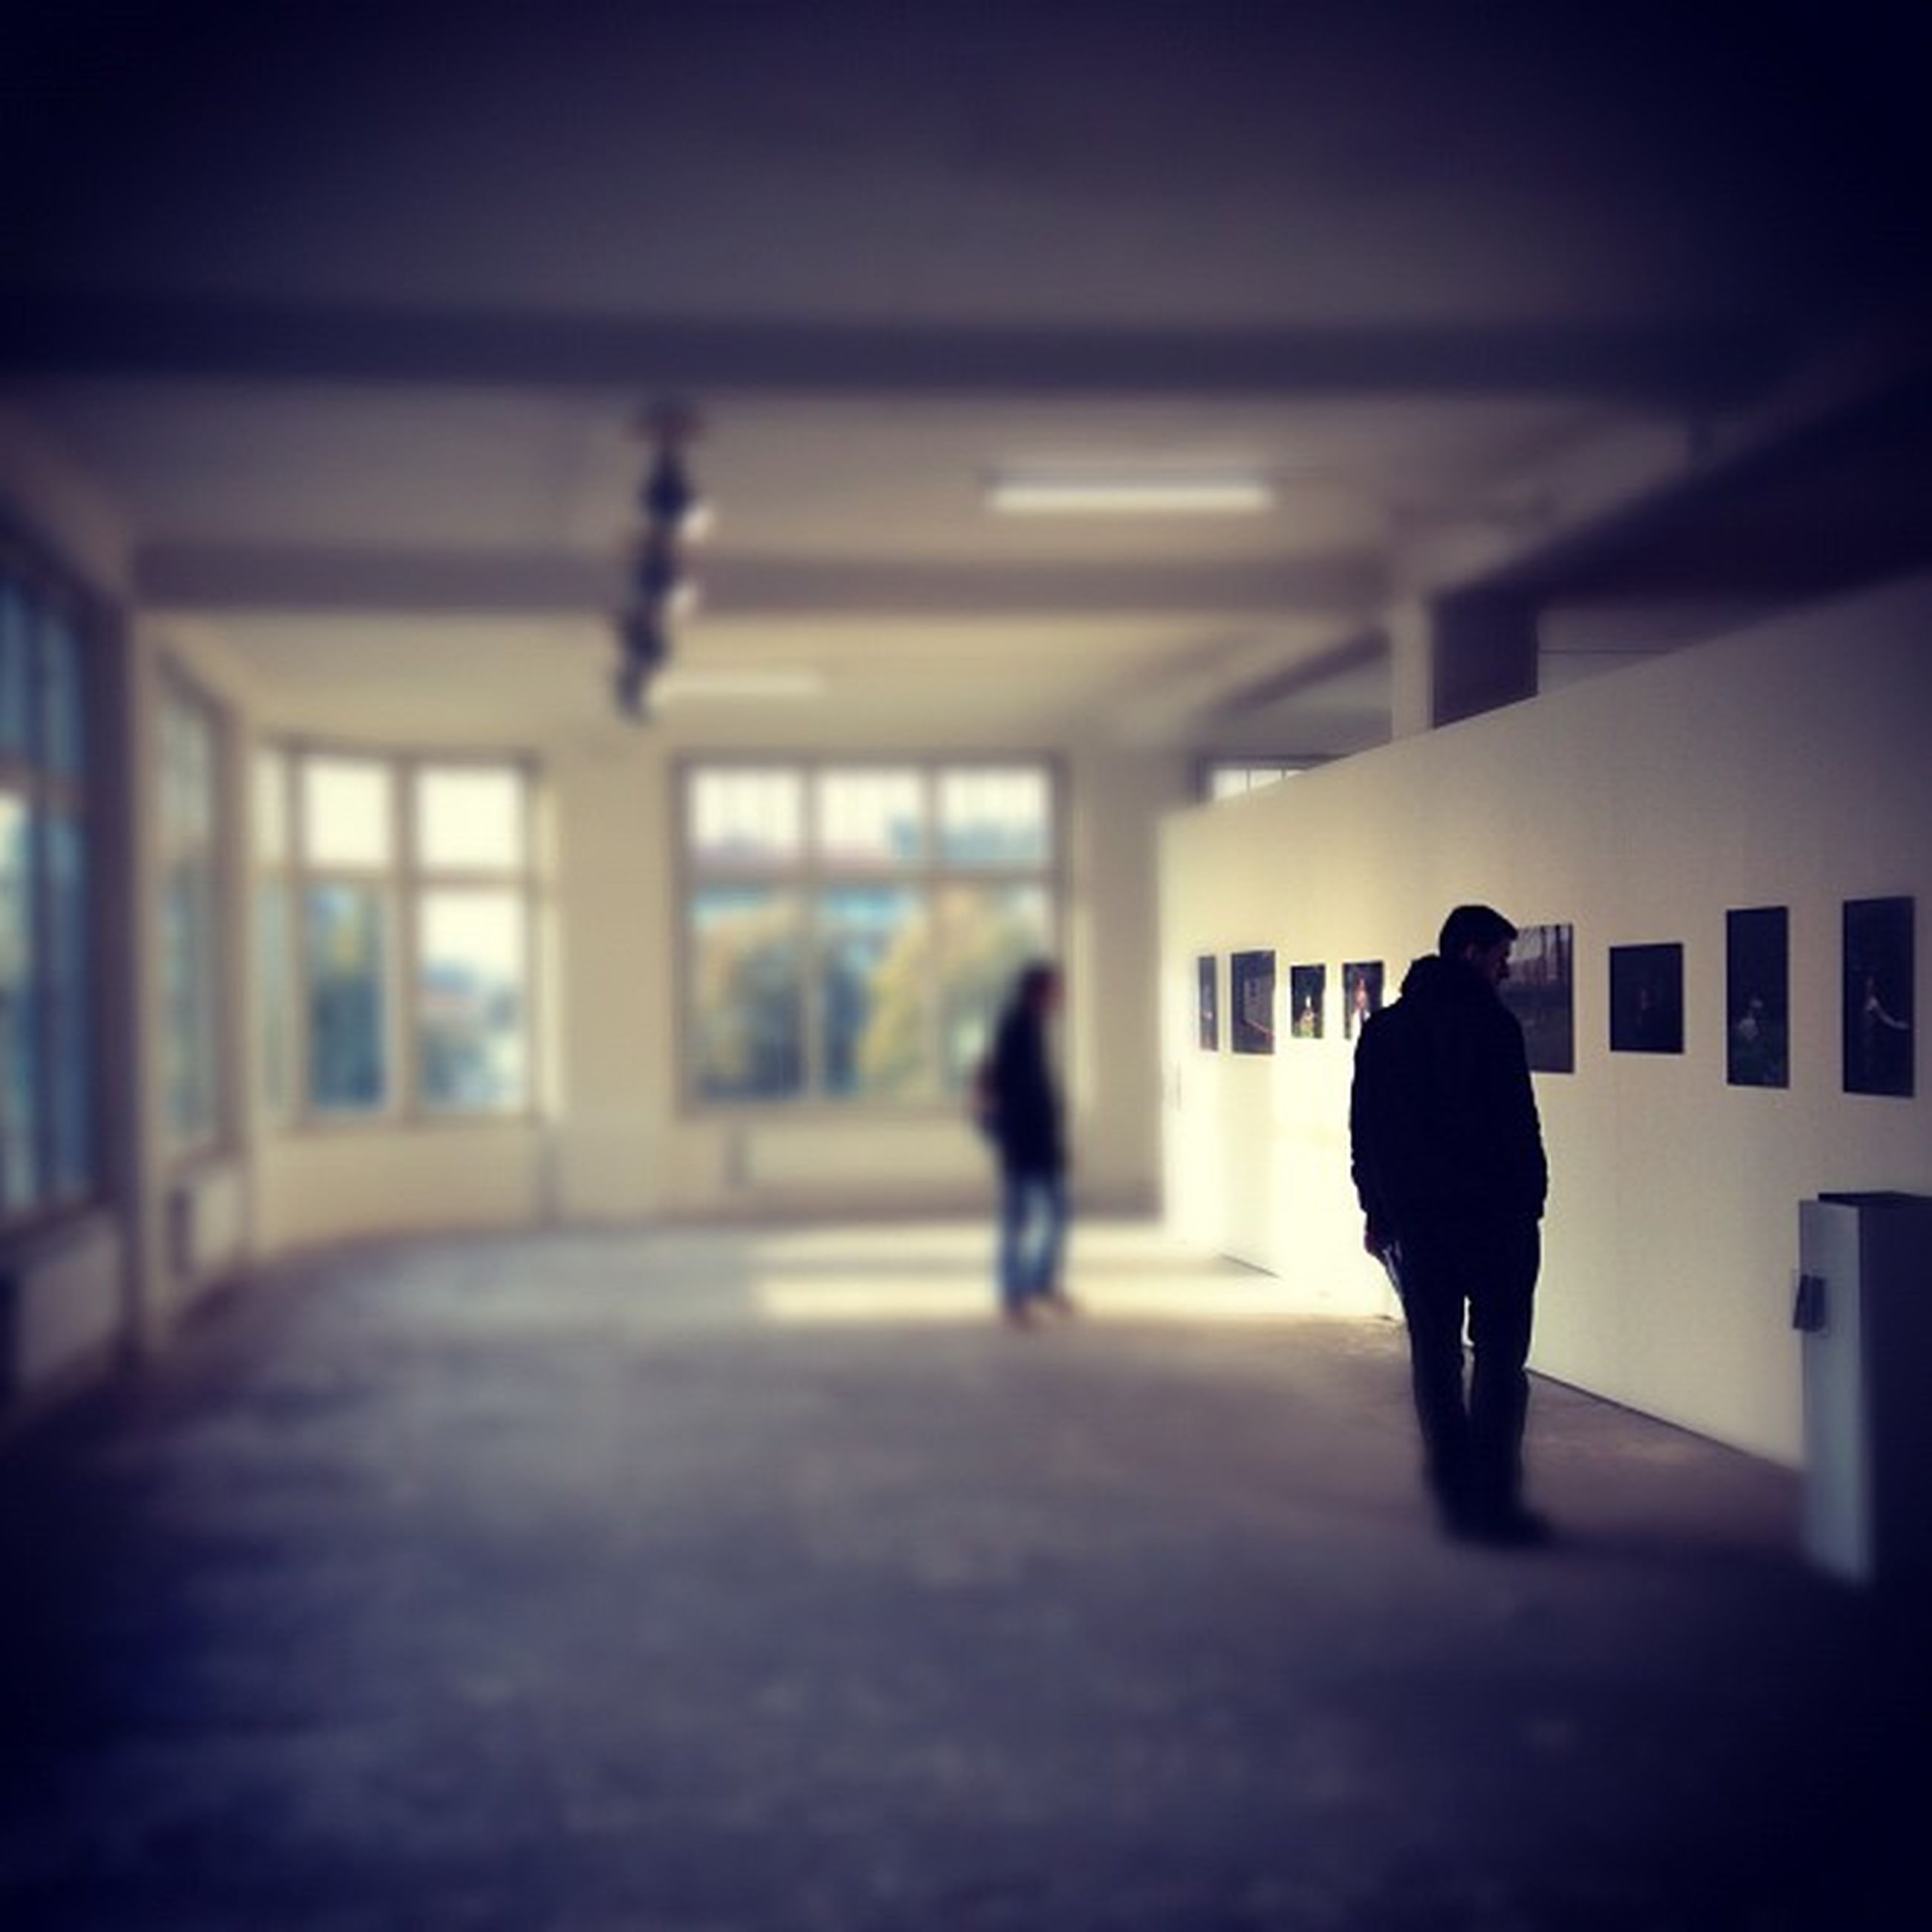 indoors, silhouette, architecture, walking, men, rear view, built structure, full length, lifestyles, window, illuminated, corridor, person, standing, flooring, unrecognizable person, dark